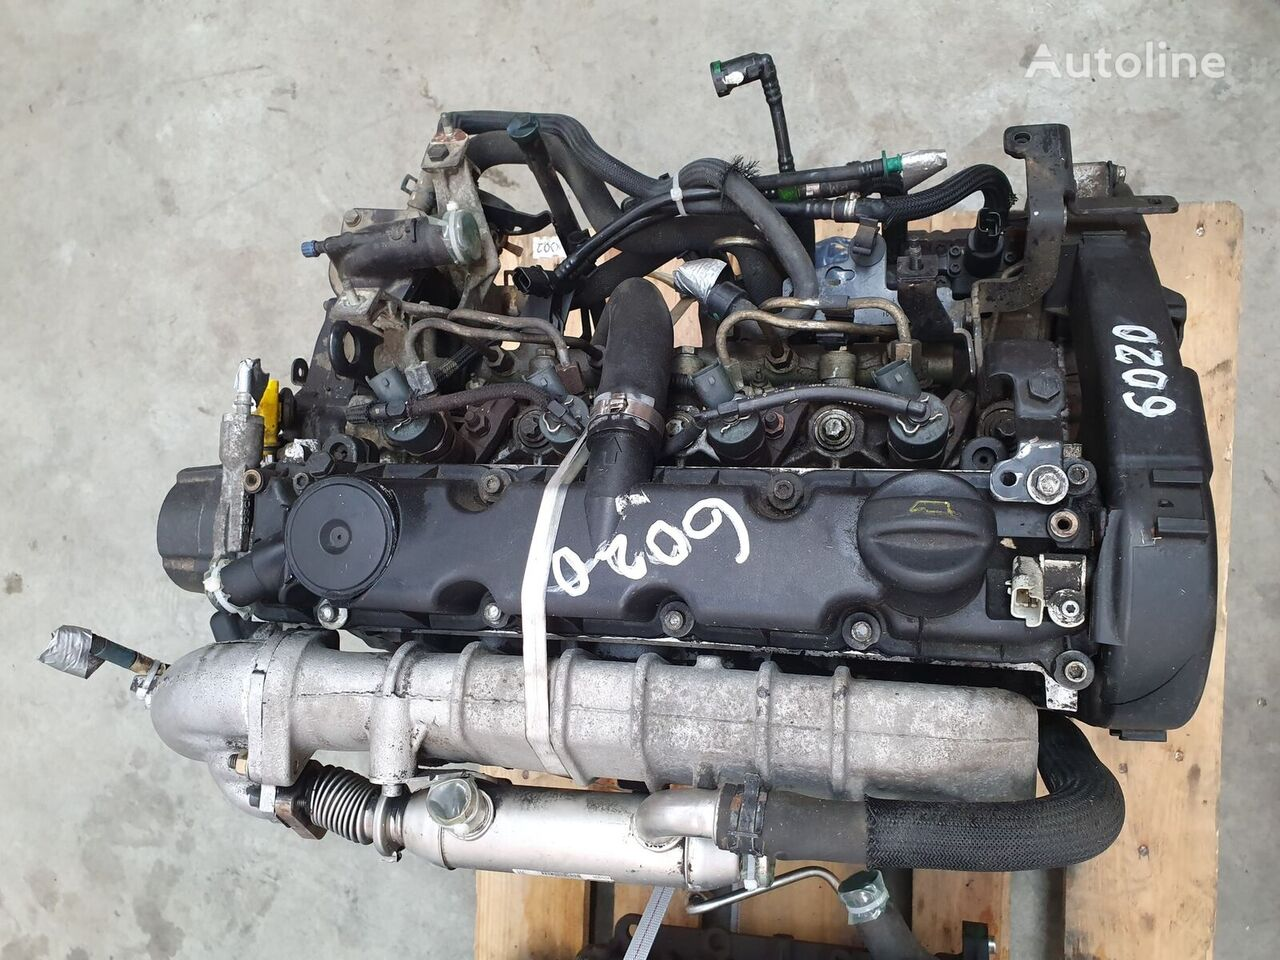 PEUGEOT Motor complet fara anexe Peugeot DW10TD, Euro 3, 66 KW, 2.0 HDI engine